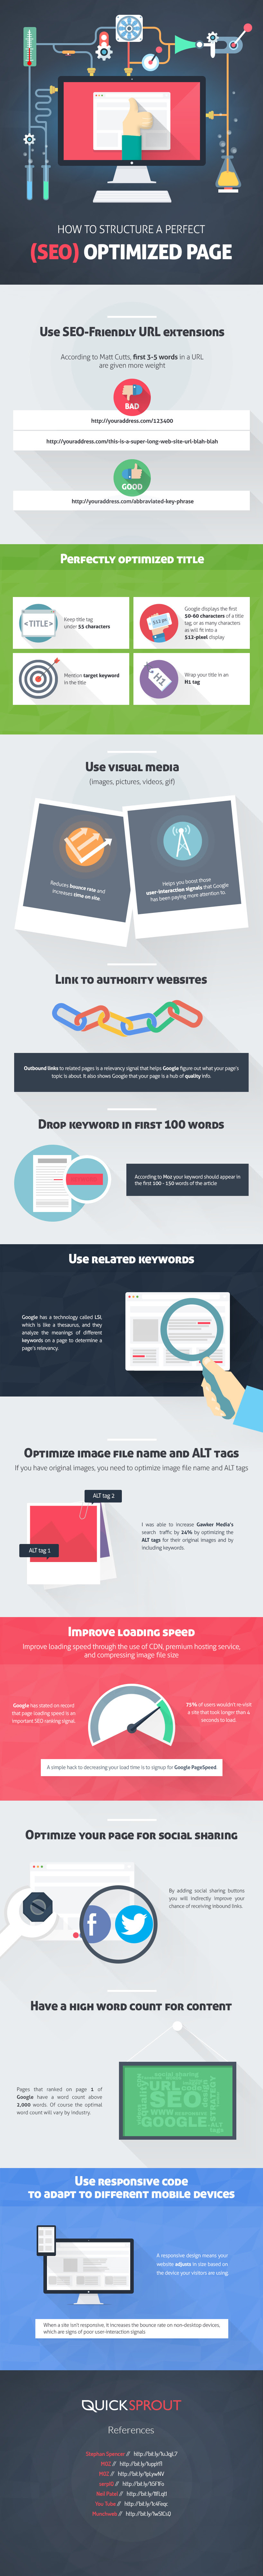 The Anatomy Of A Perfect SEO Optimized Website - #infographic